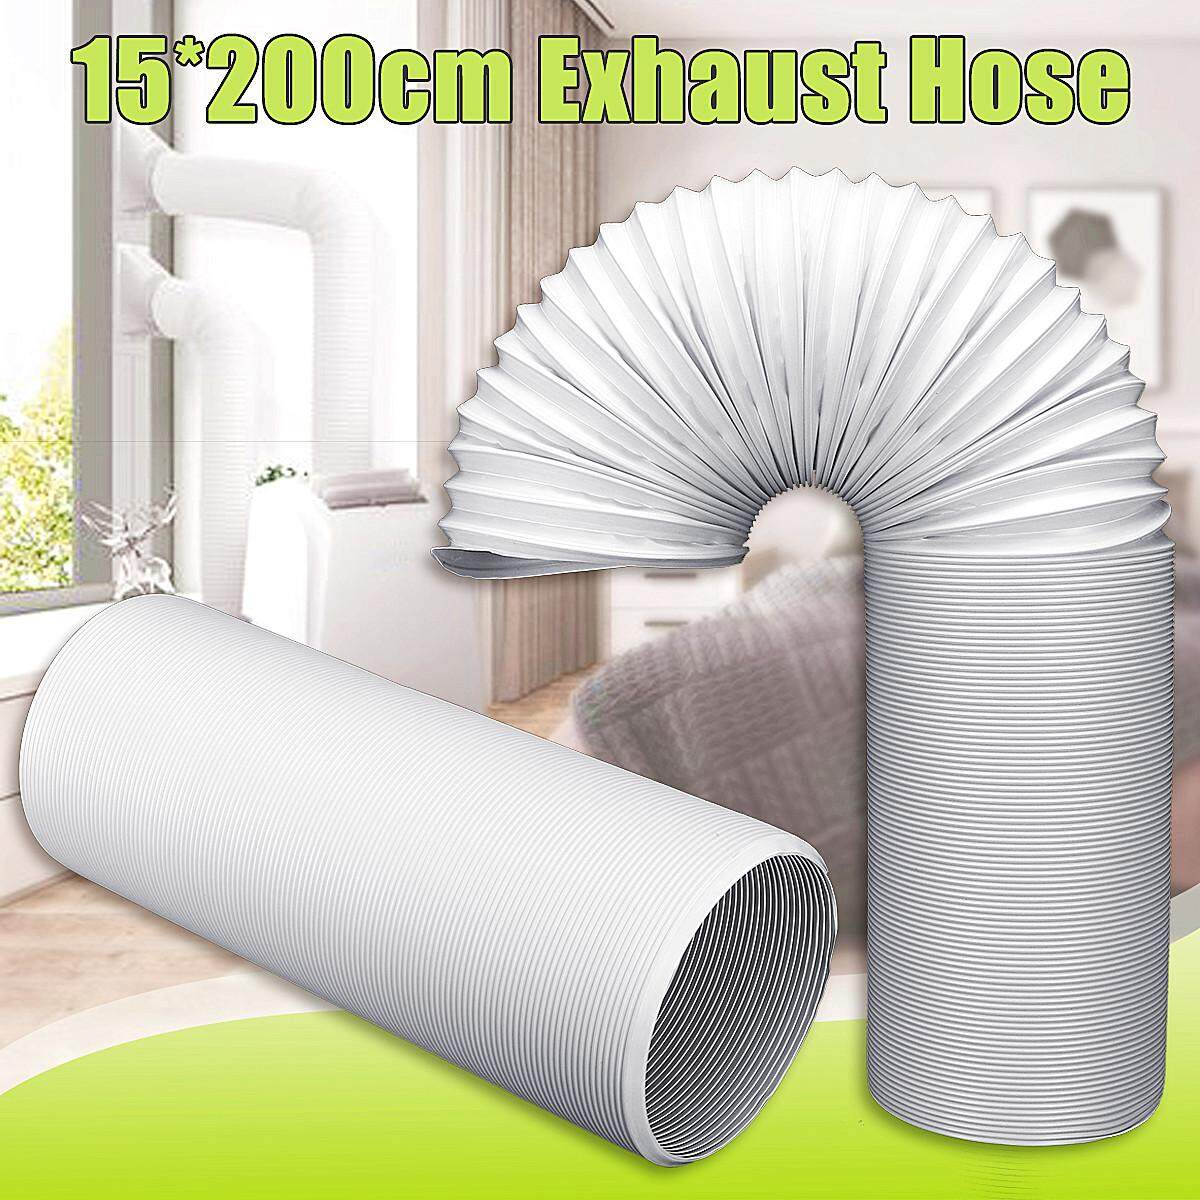 2M Exhaust Hose Vent Tube Pipe Steel Wire Air Conditioner 150mm Outlet Diameter